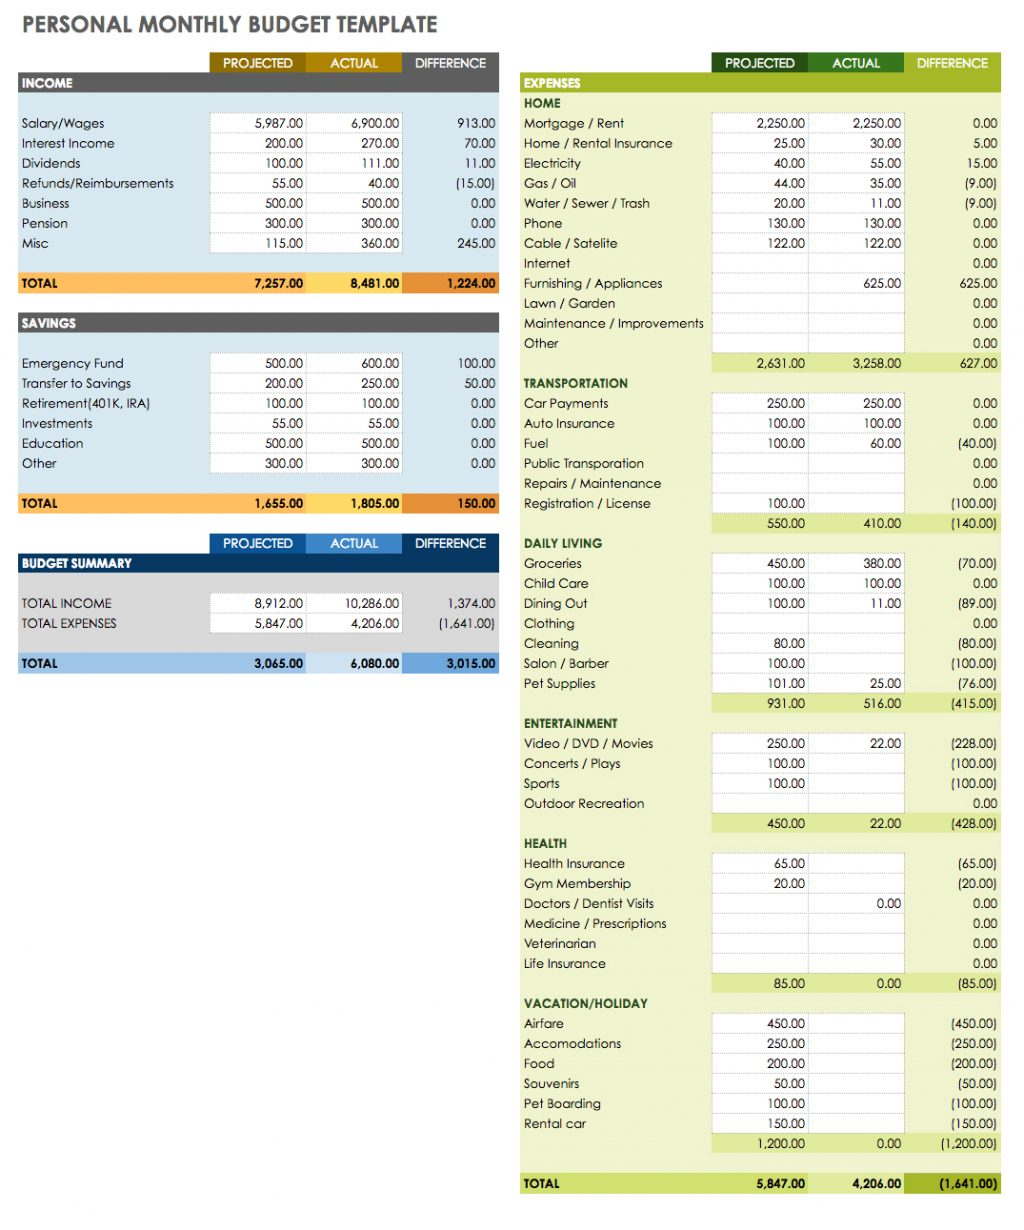 Car Comparison Spreadsheet For Sheet Company Car Comparison Spreadsheet Vehicle Cost Used Excel